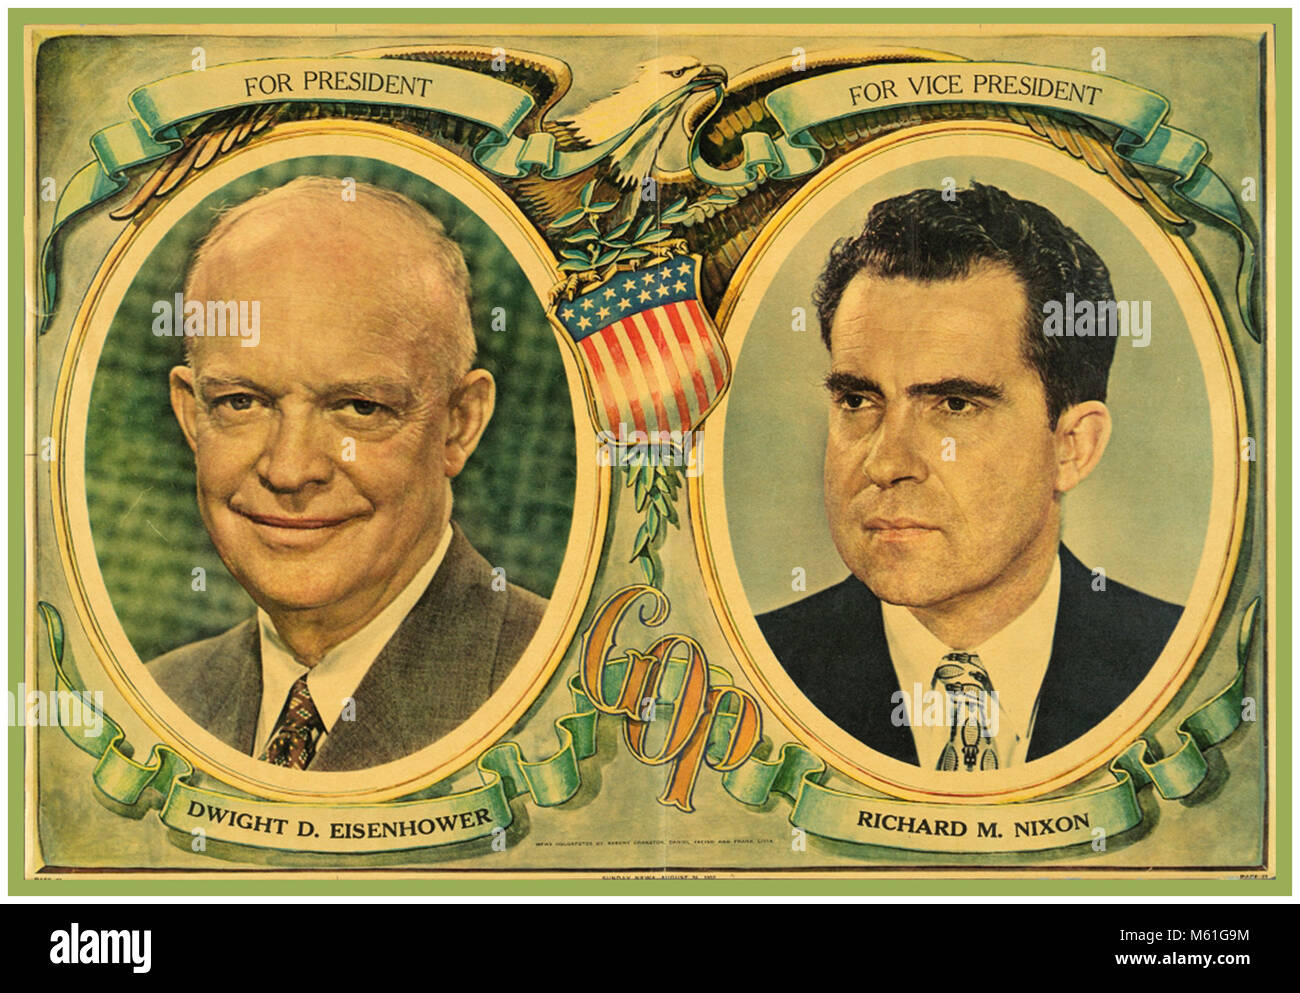 1950's VINTAGE USA AMERICAN PRESIDENTIAL CAMPAIGN POSTER 1952 EISENHOWER NIXON The United States presidential election - Stock Image